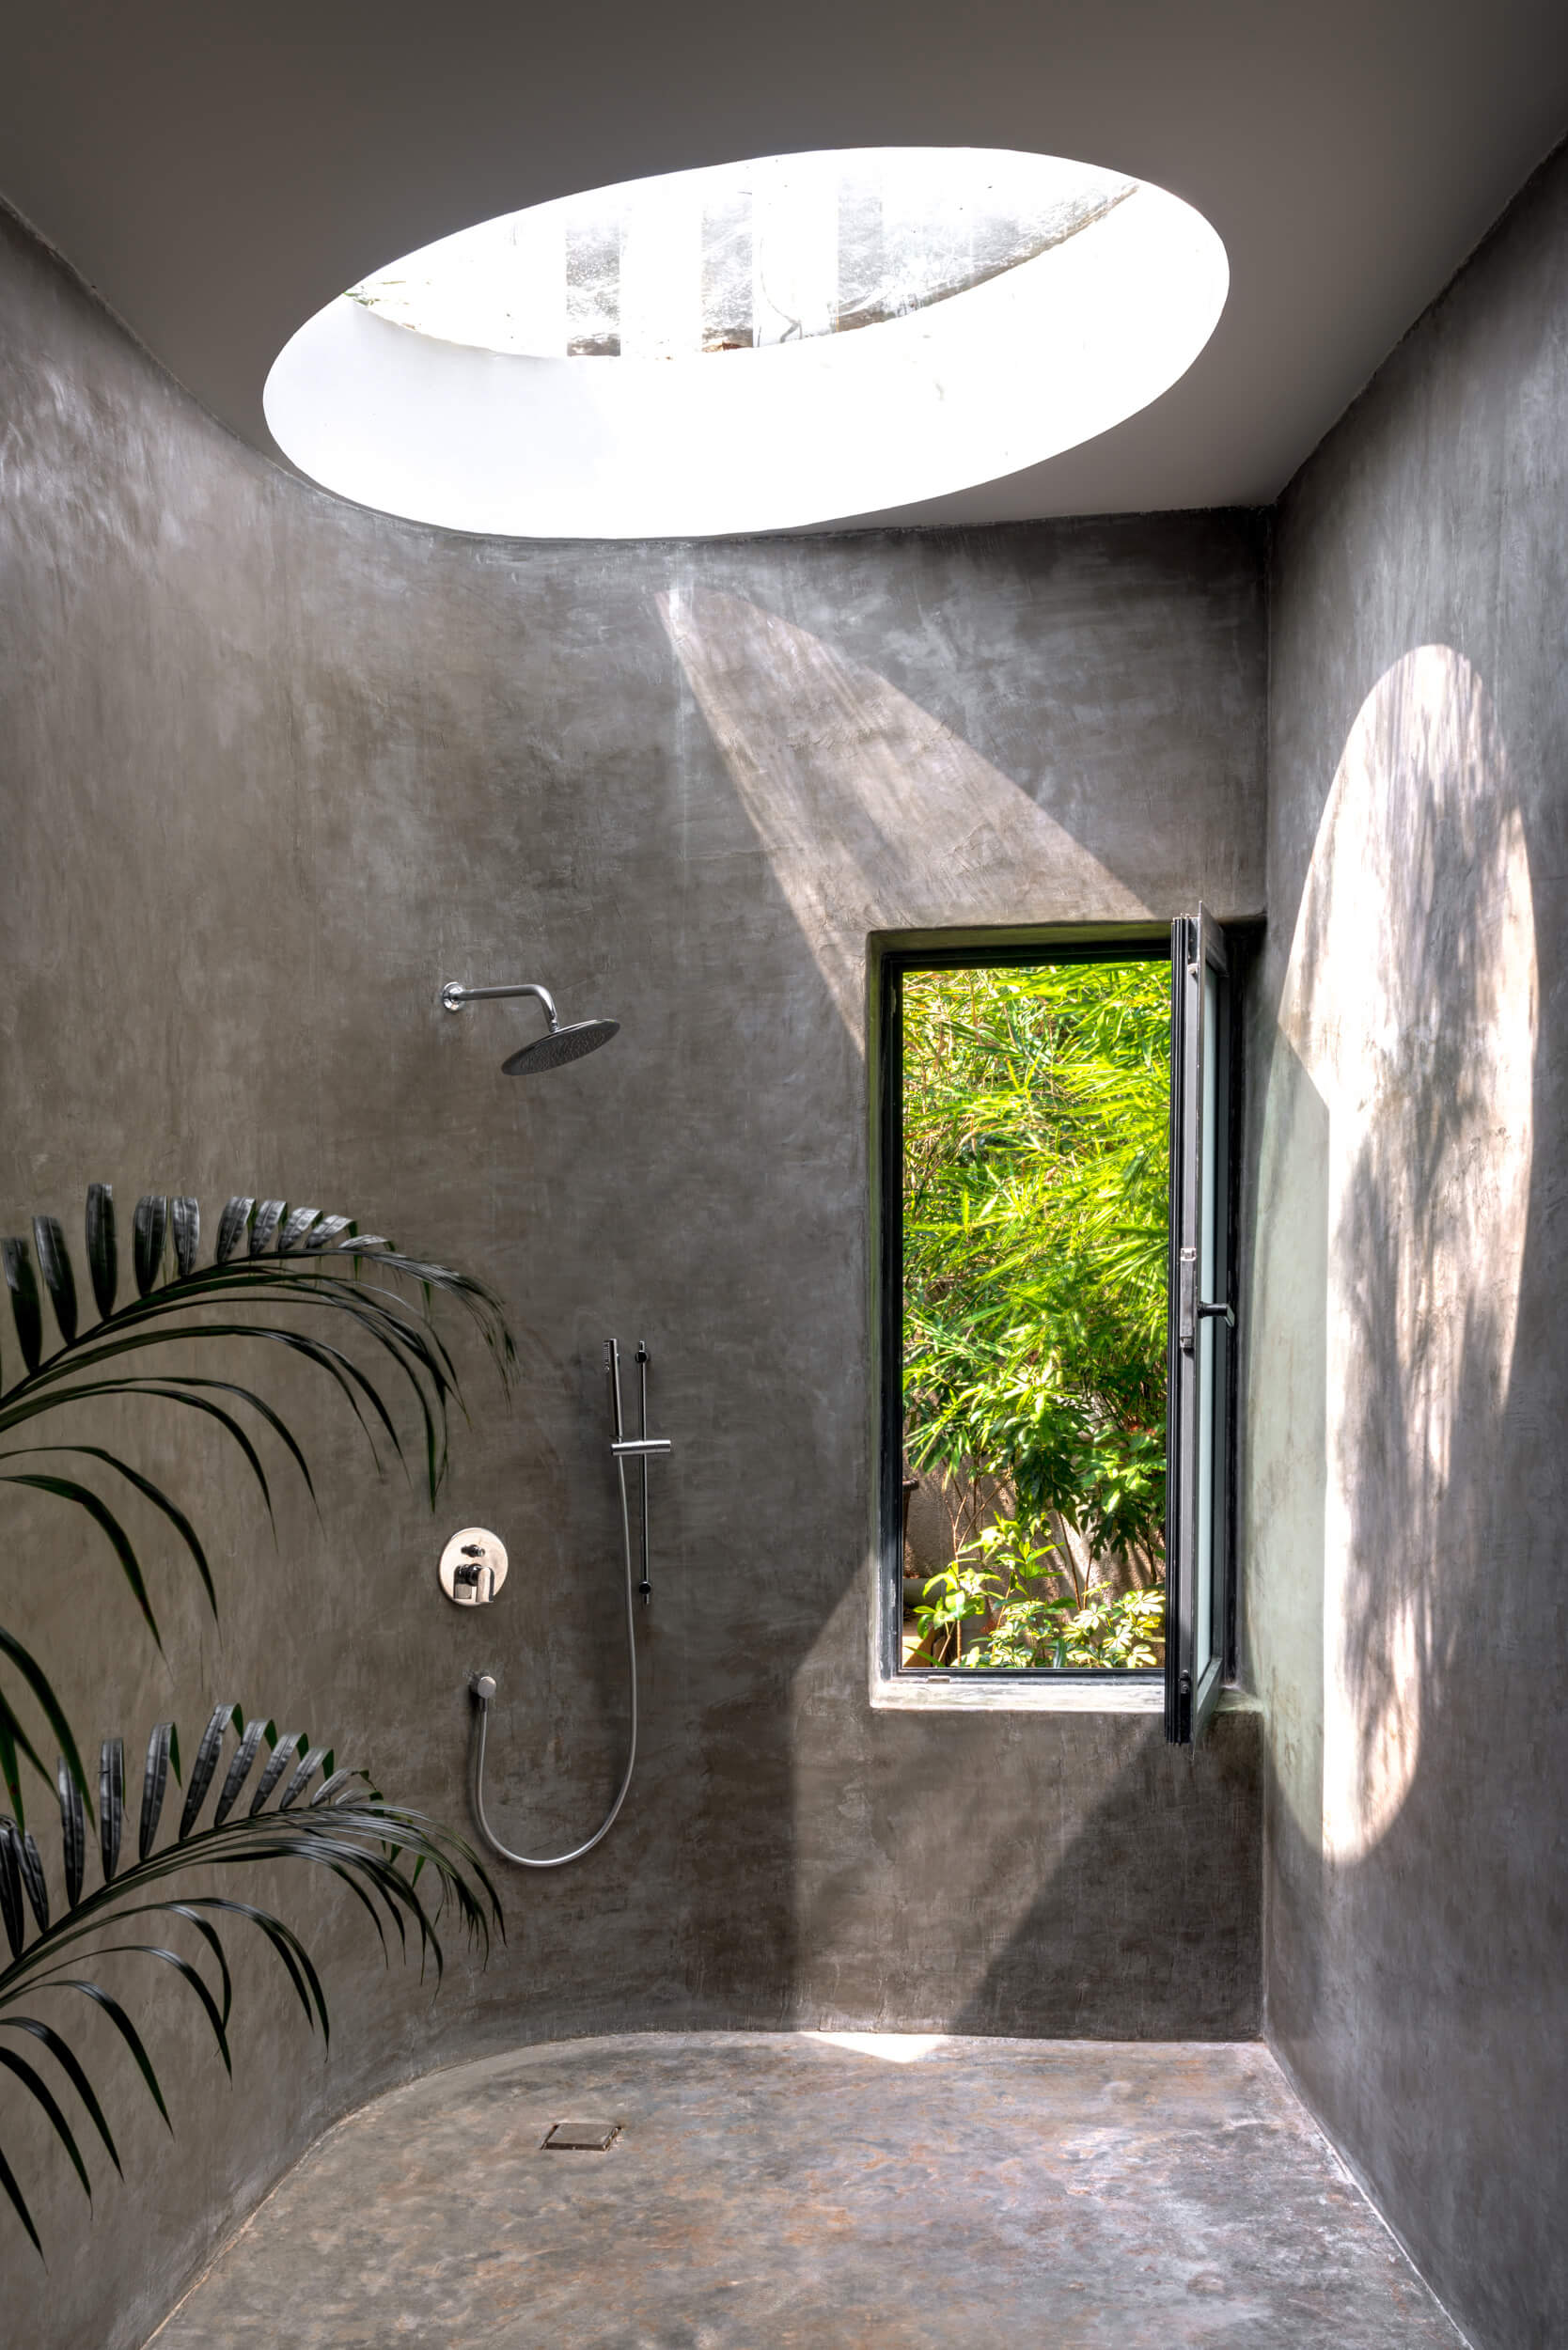 Grey toned minimalist style employed for Lua's bathroom in Lake Huron, Canada | Lua and Terra Si-oul villas by Kriss Real Estate and SAV architects | STIRworld